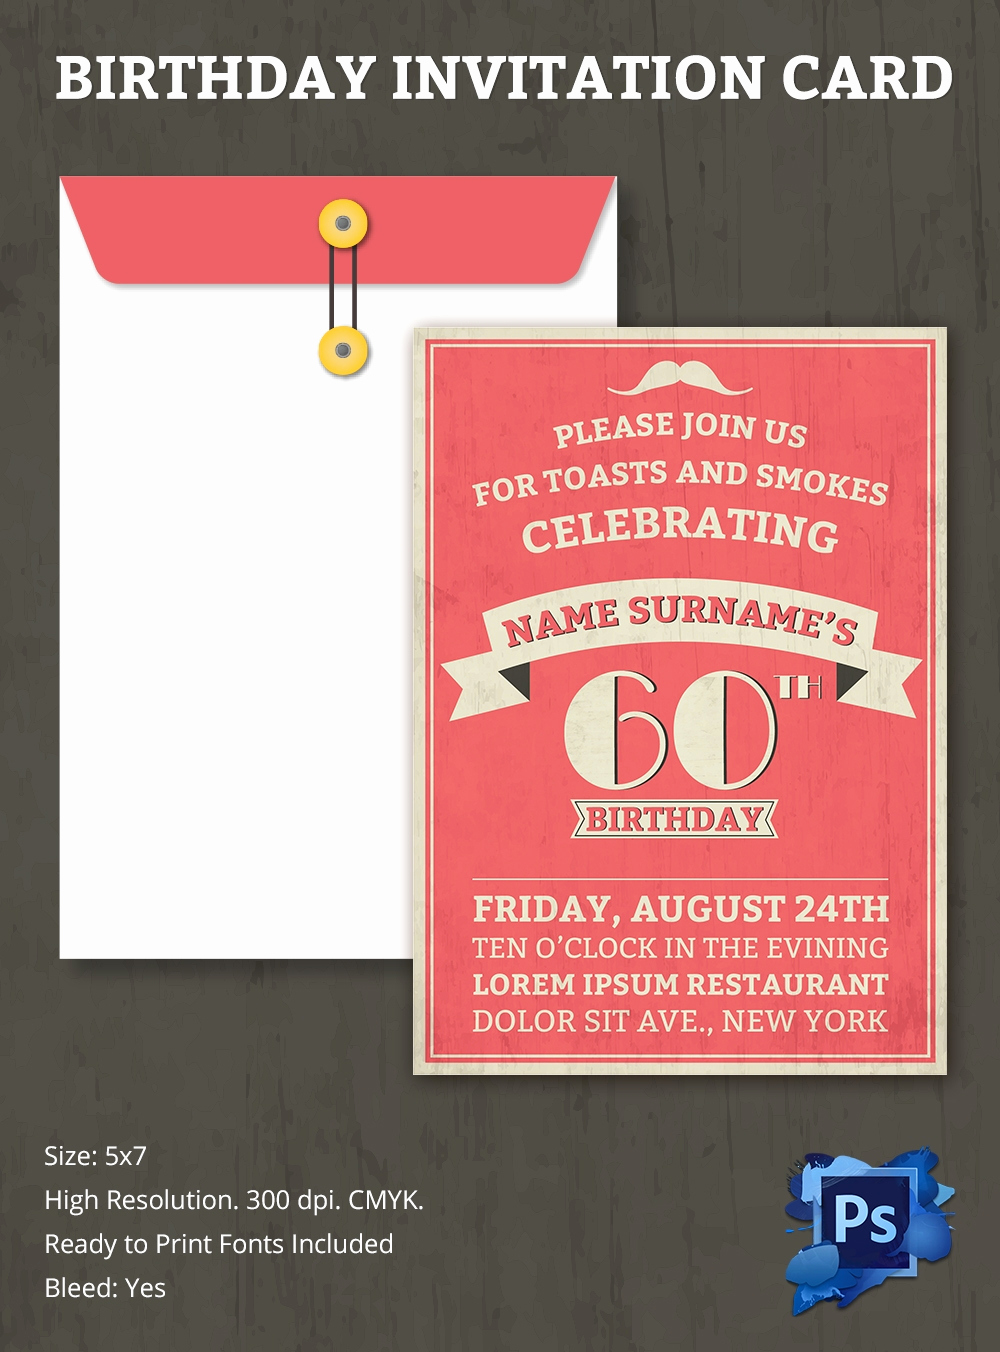 Birthday Invitation Card Sample Unique Birthday Invitation Template – 70 Free Psd format